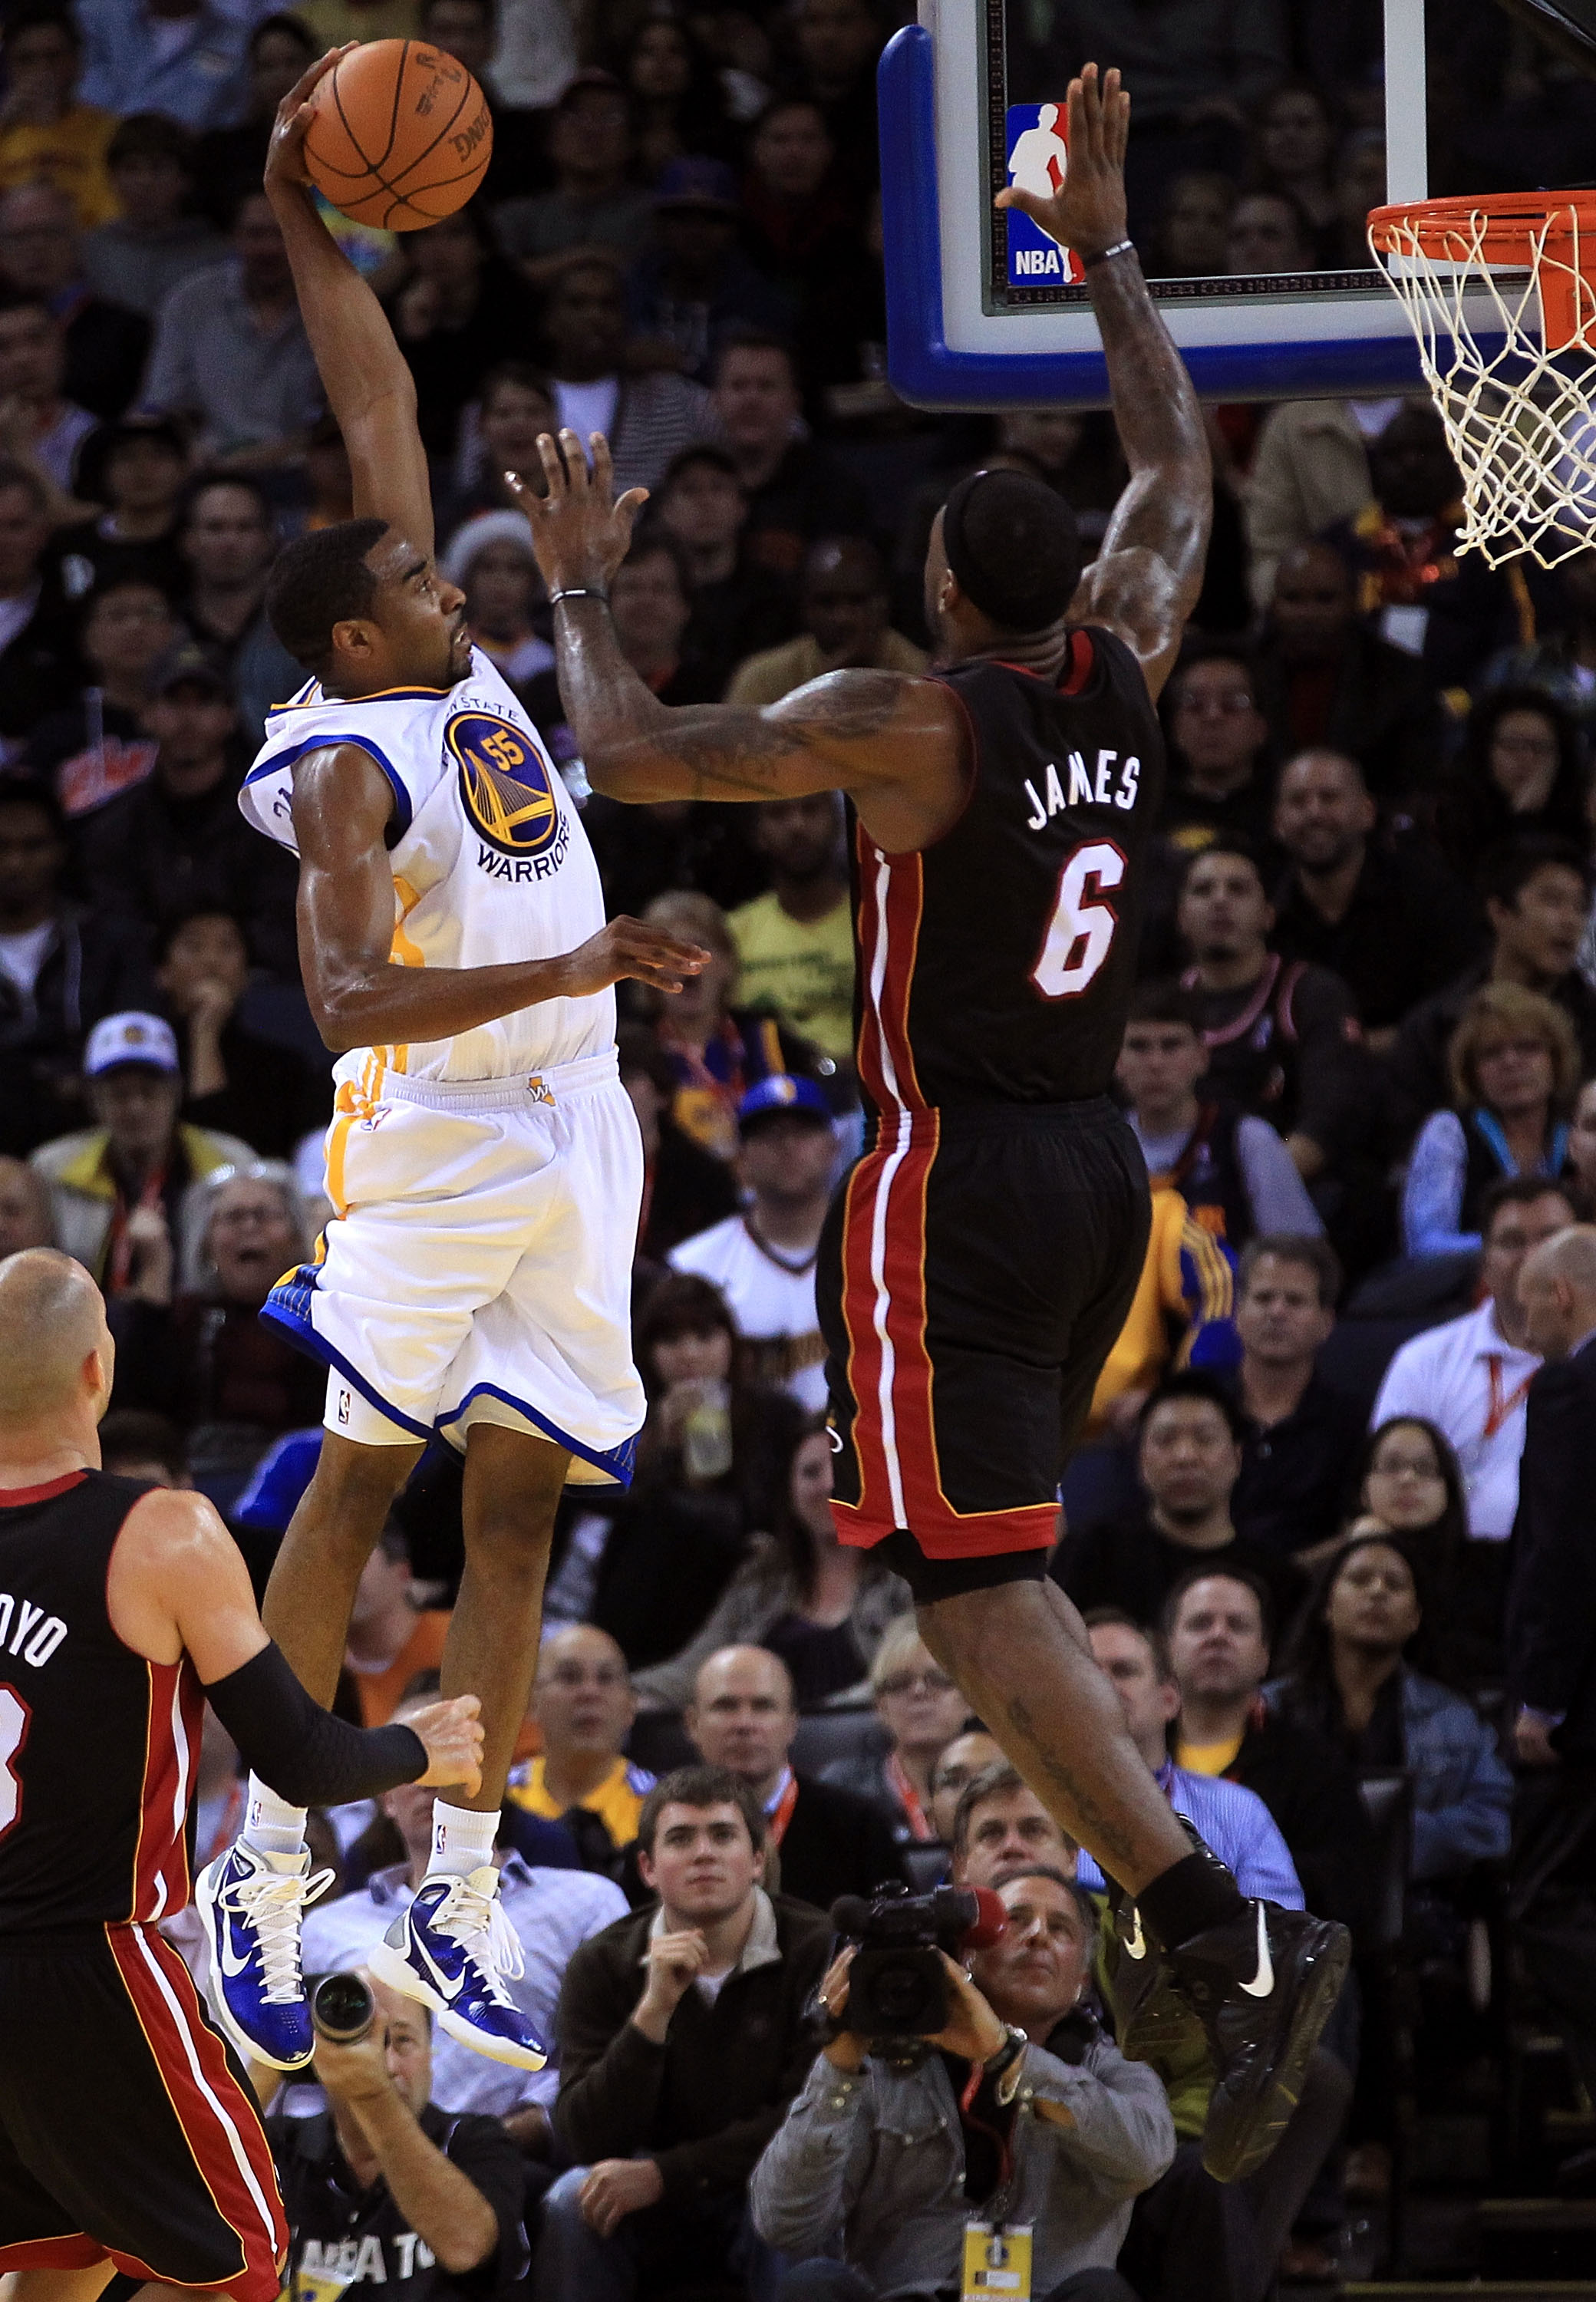 OAKLAND, CA - DECEMBER 10:  Reggie Williams #55 of the Golden State Warriors goes up for a dunk against Lebron James #6 of the Miami Heat at Oracle Arena on December 10, 2010 in Oakland, California. NOTE TO USER: User expressly acknowledges and agrees tha